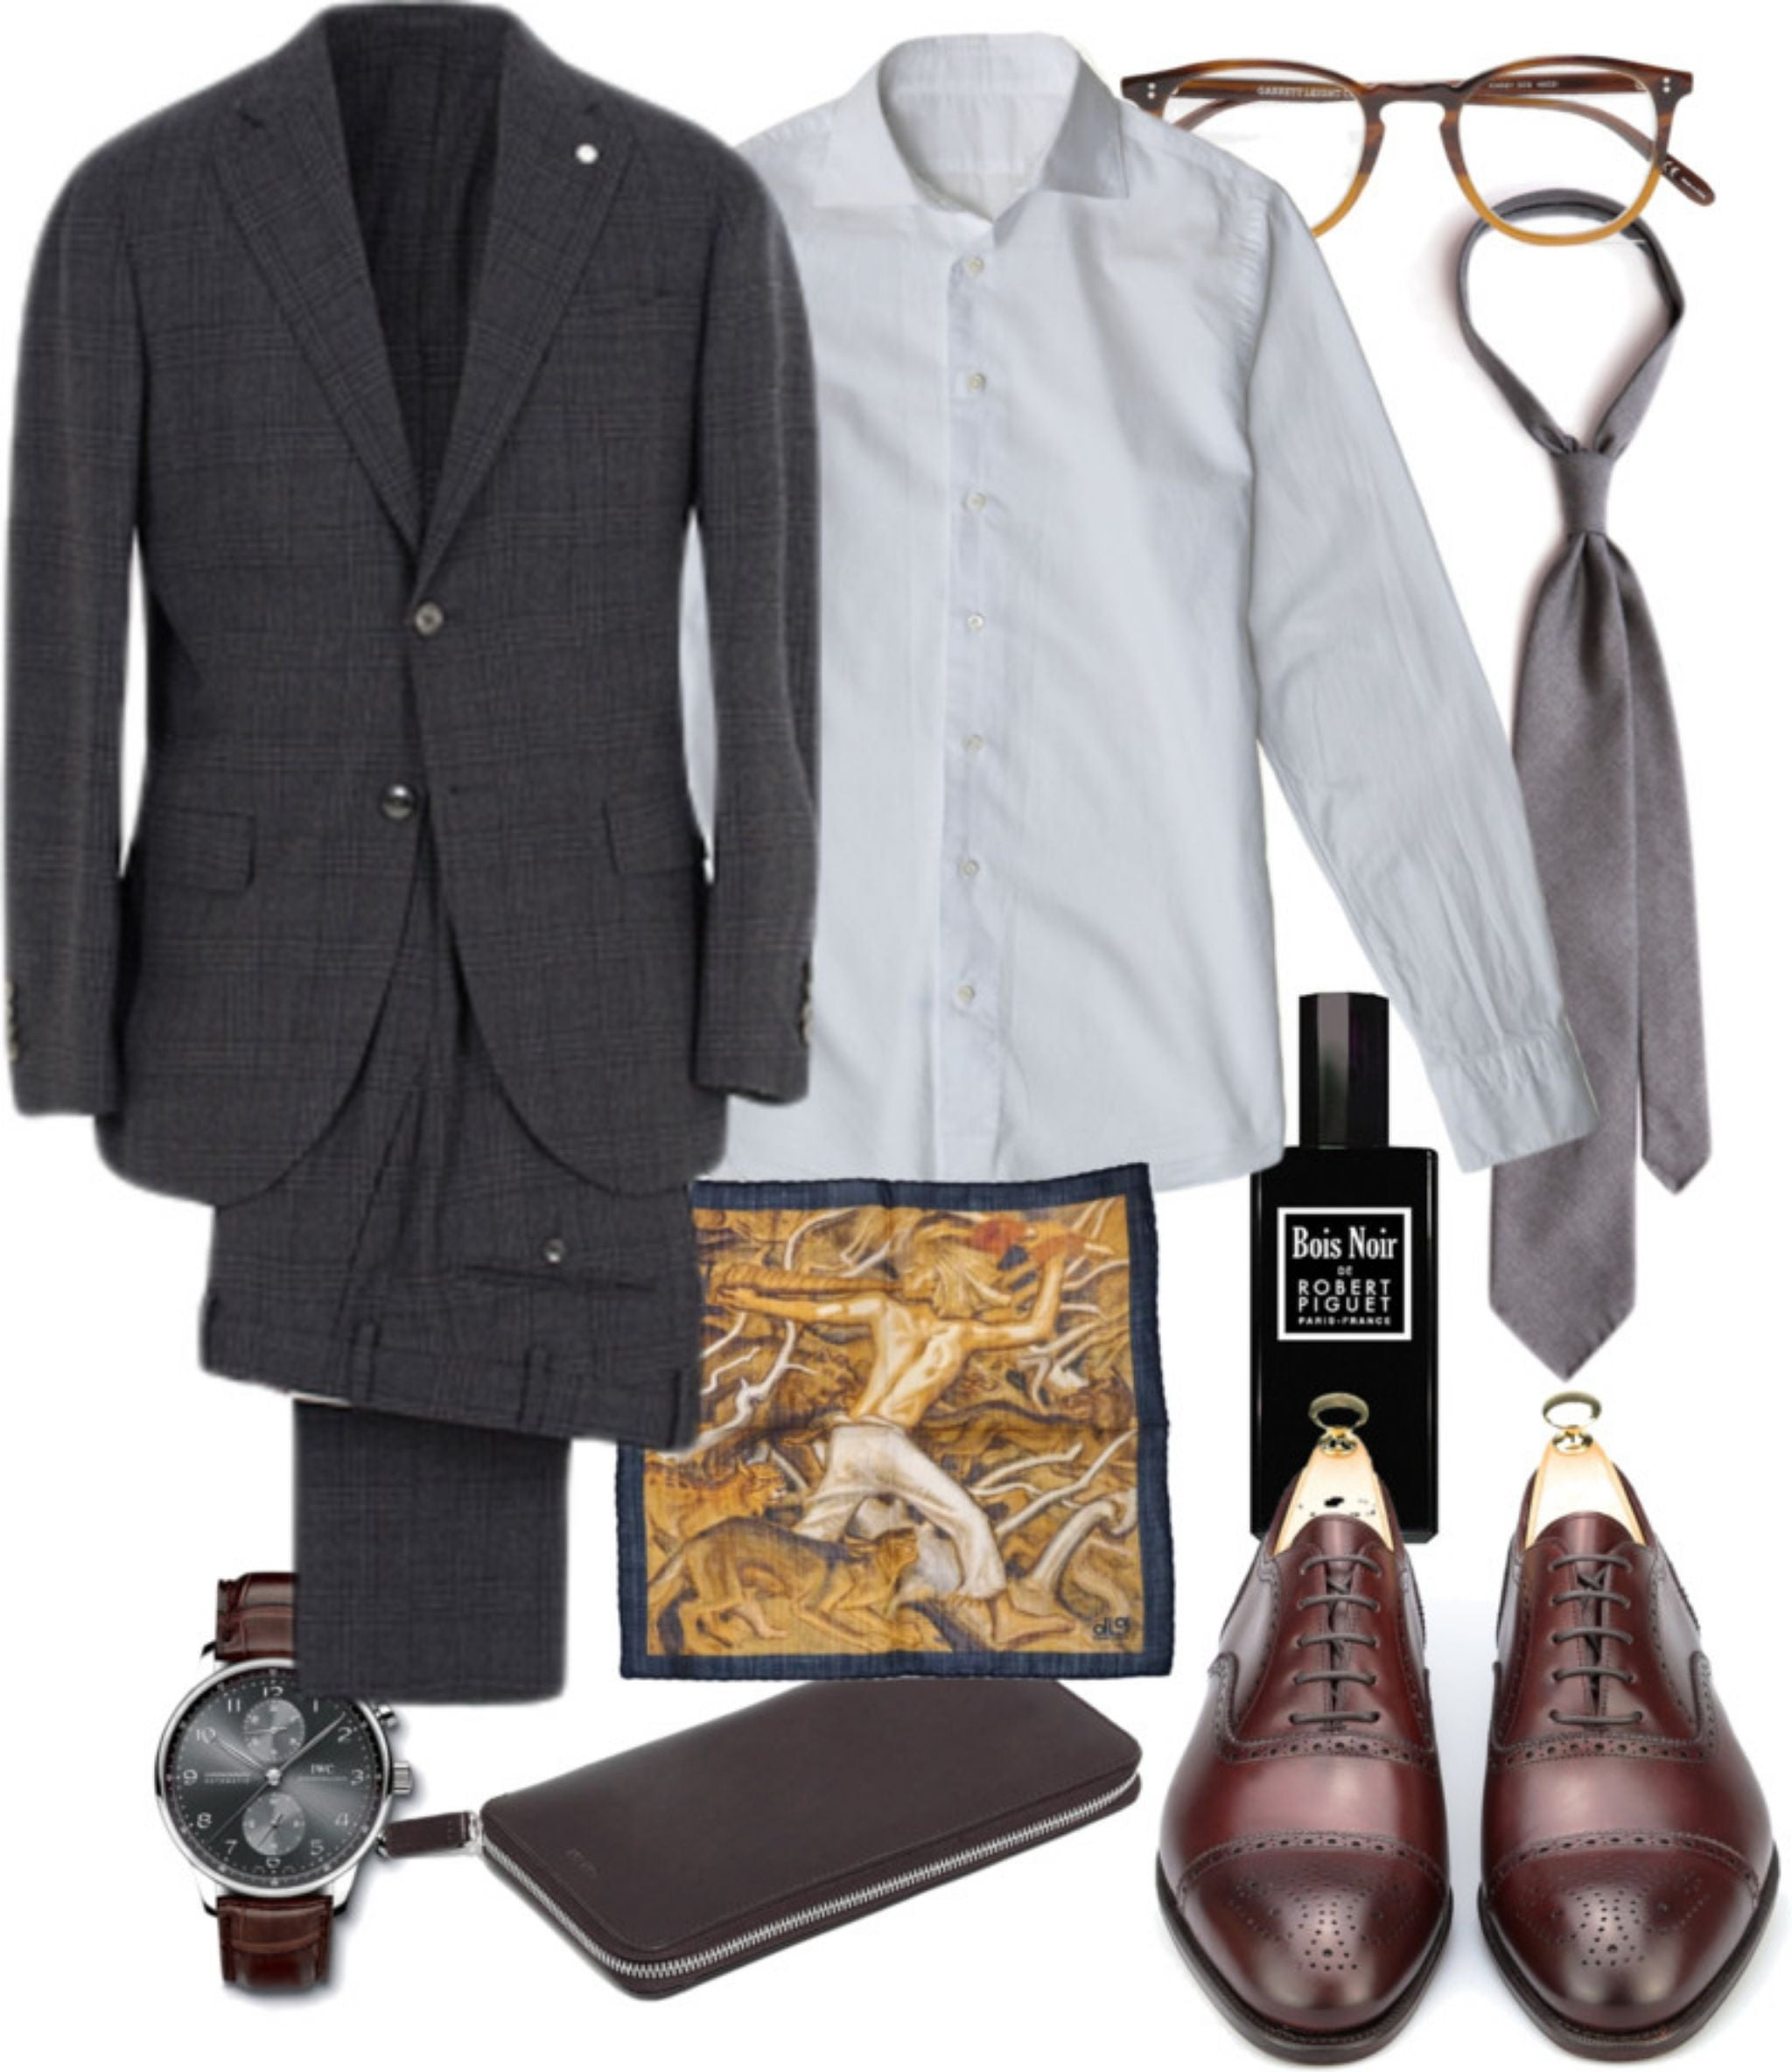 what-to-wear-on-new-years-eve-mens-smart-casual-attire-suit-with-tie